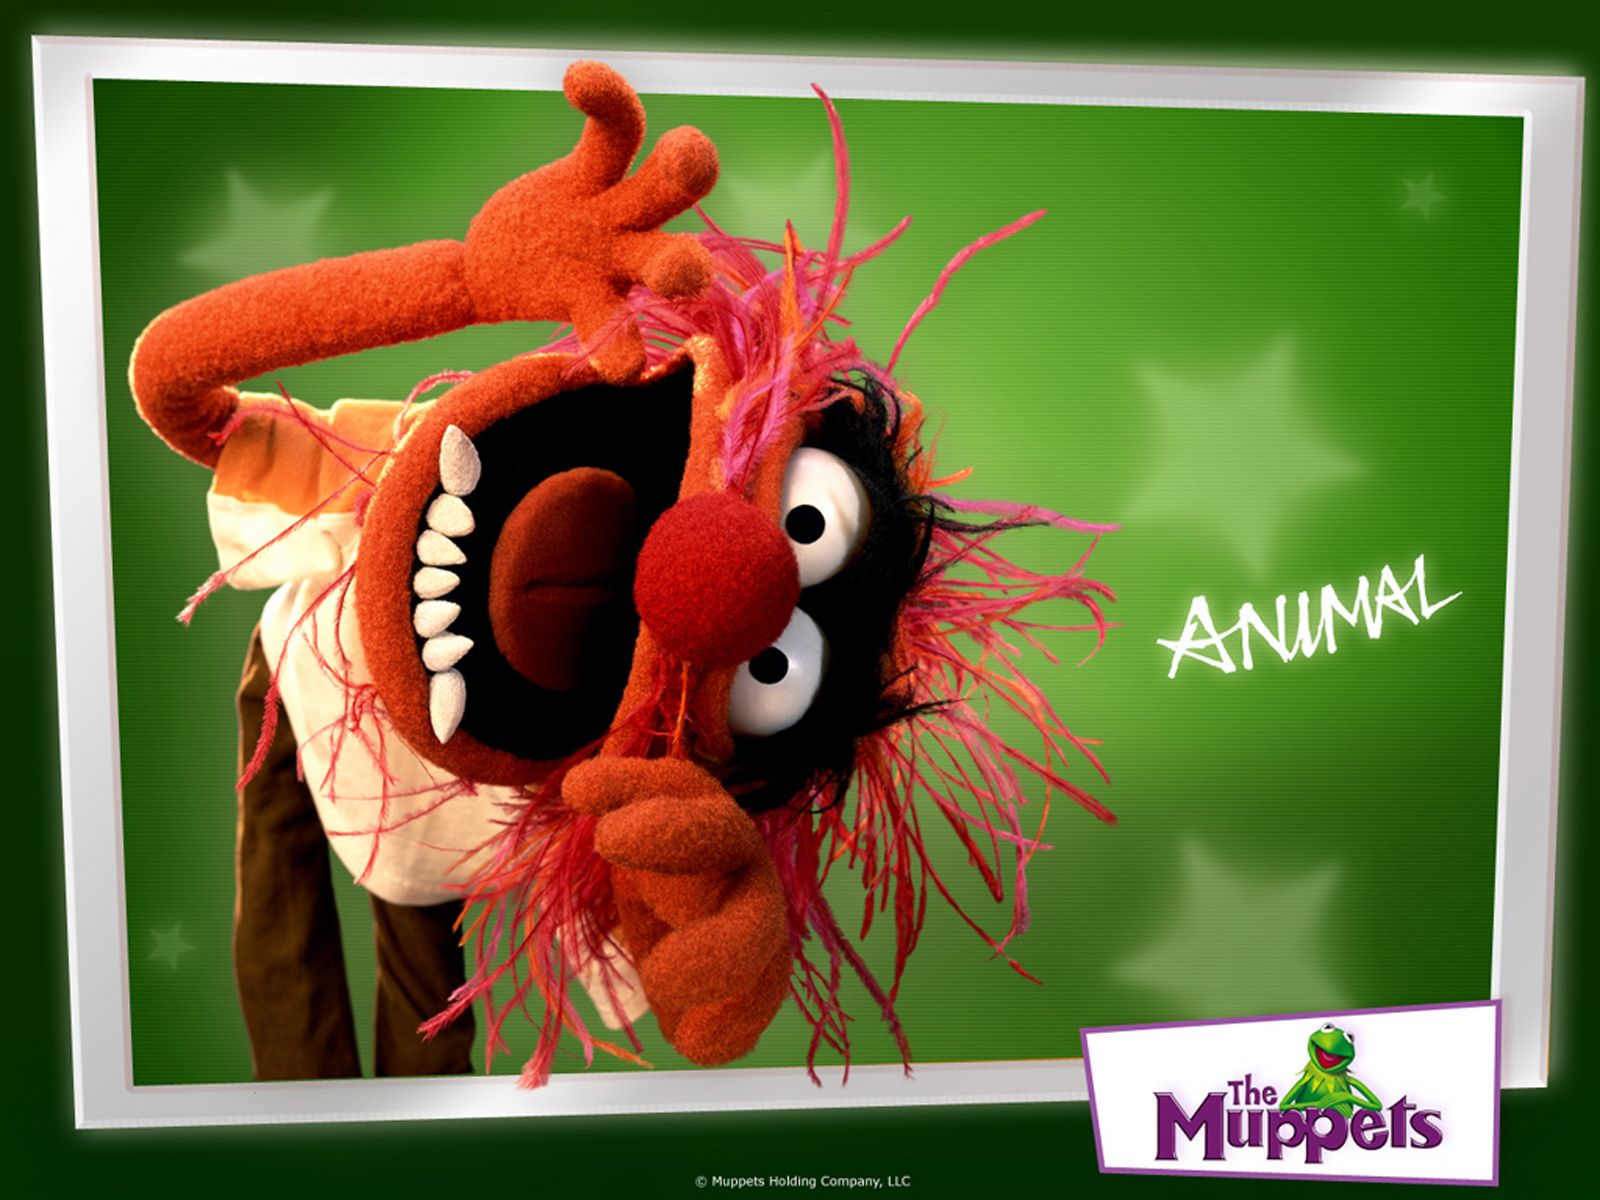 animal muppets wallpaper - photo #2